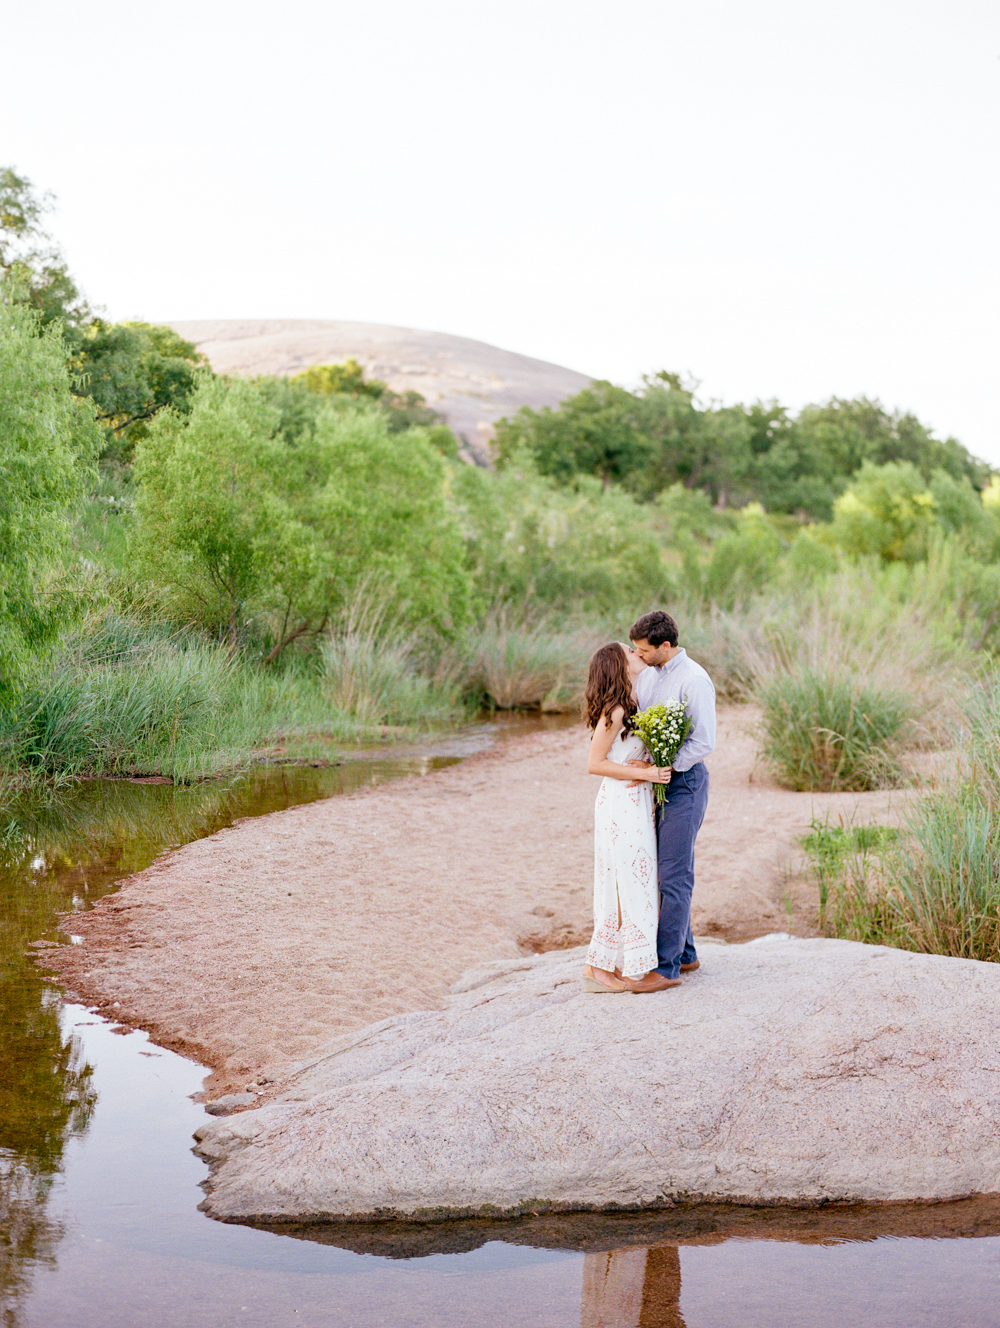 dana+fernandez+photography+enchanted+rock+engagements+photographer+austin+wedding+destination+film-22.jpg